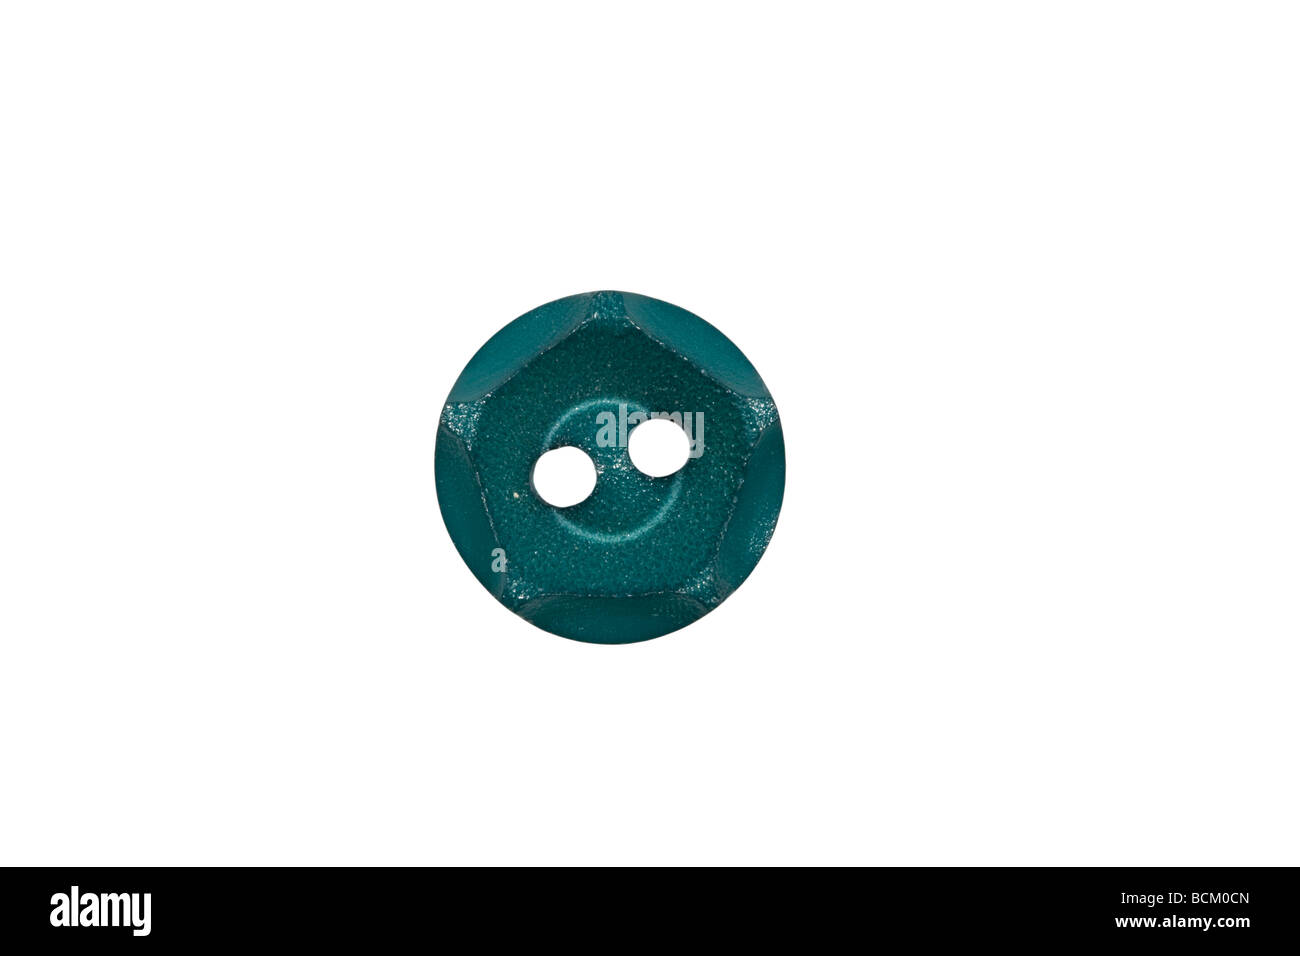 Turquoise coloured plastic button - Stock Image